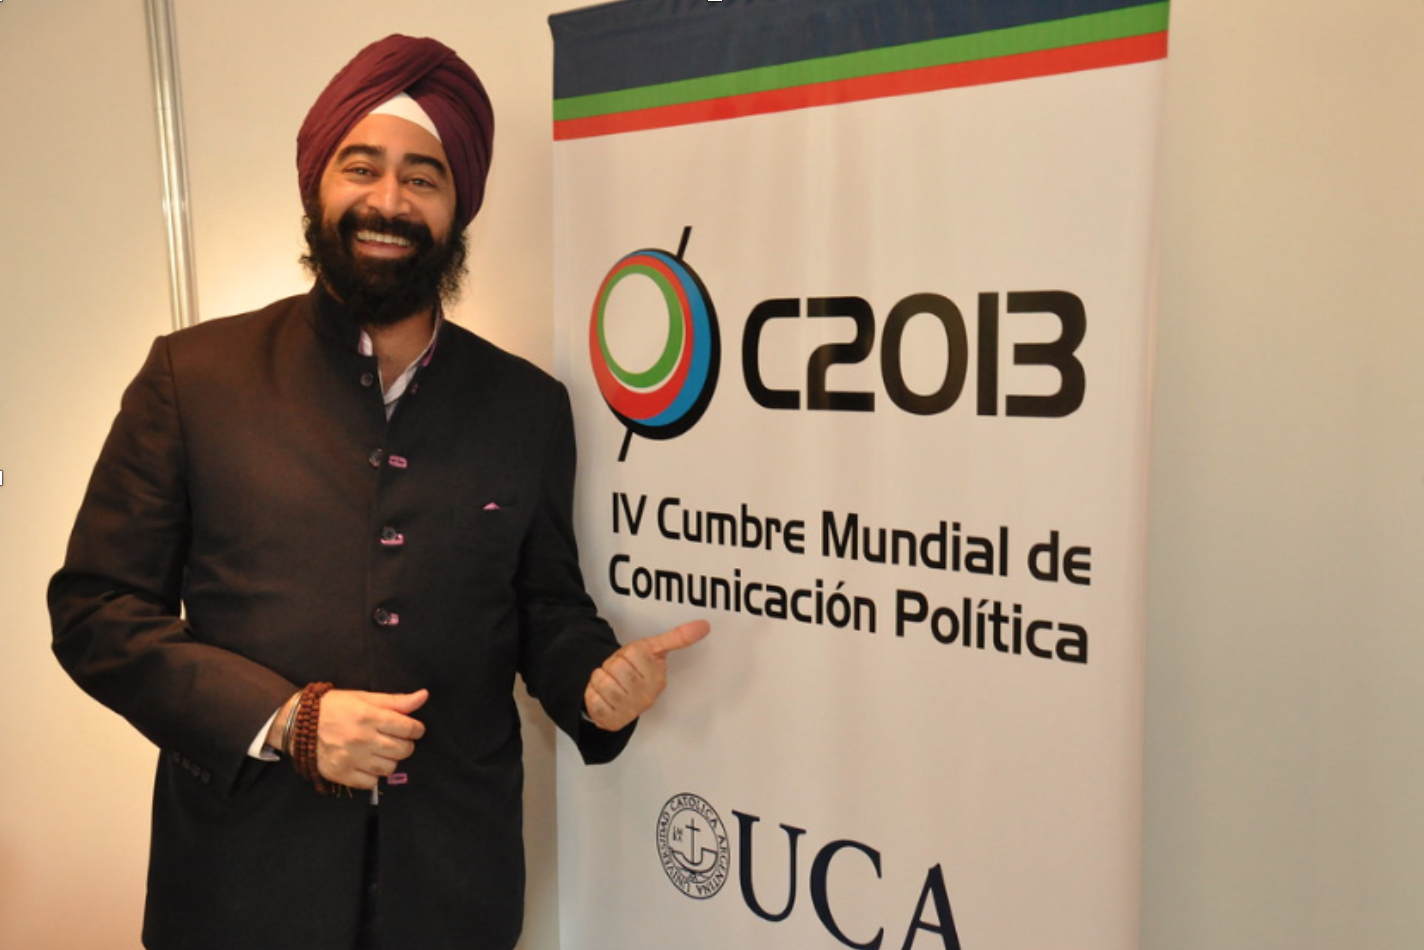 Ravi Singh is invited to speak at a political training seminar in Medellin, Colombia.